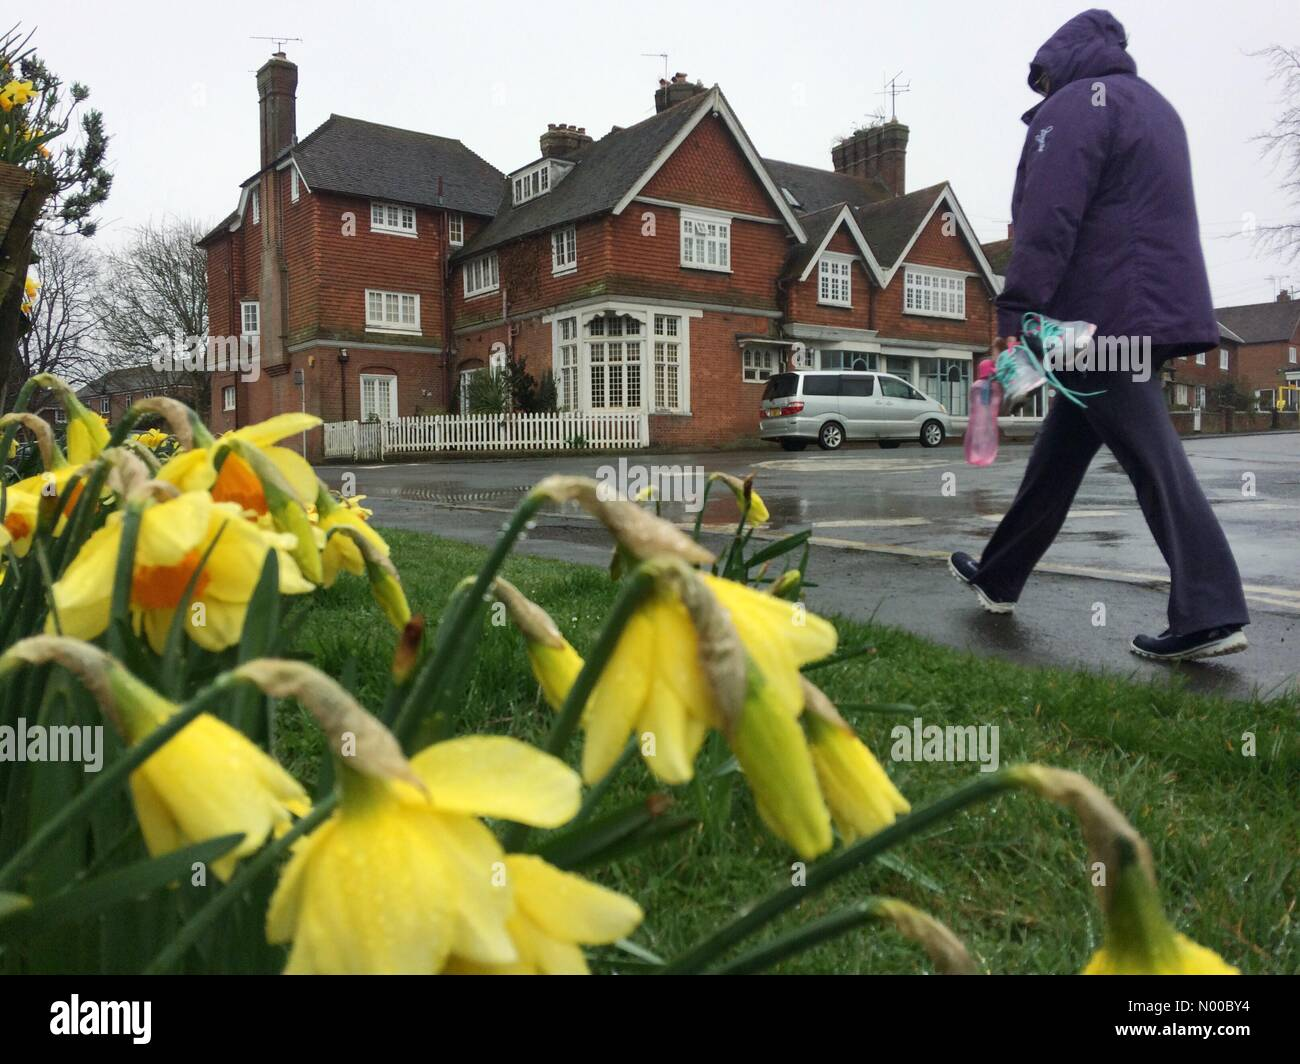 Barcombe, Wast Sussex, UK. 20th March 2017. Wet and windy vernal equinox, which marks the first day of spring. Credit: - Stock Image